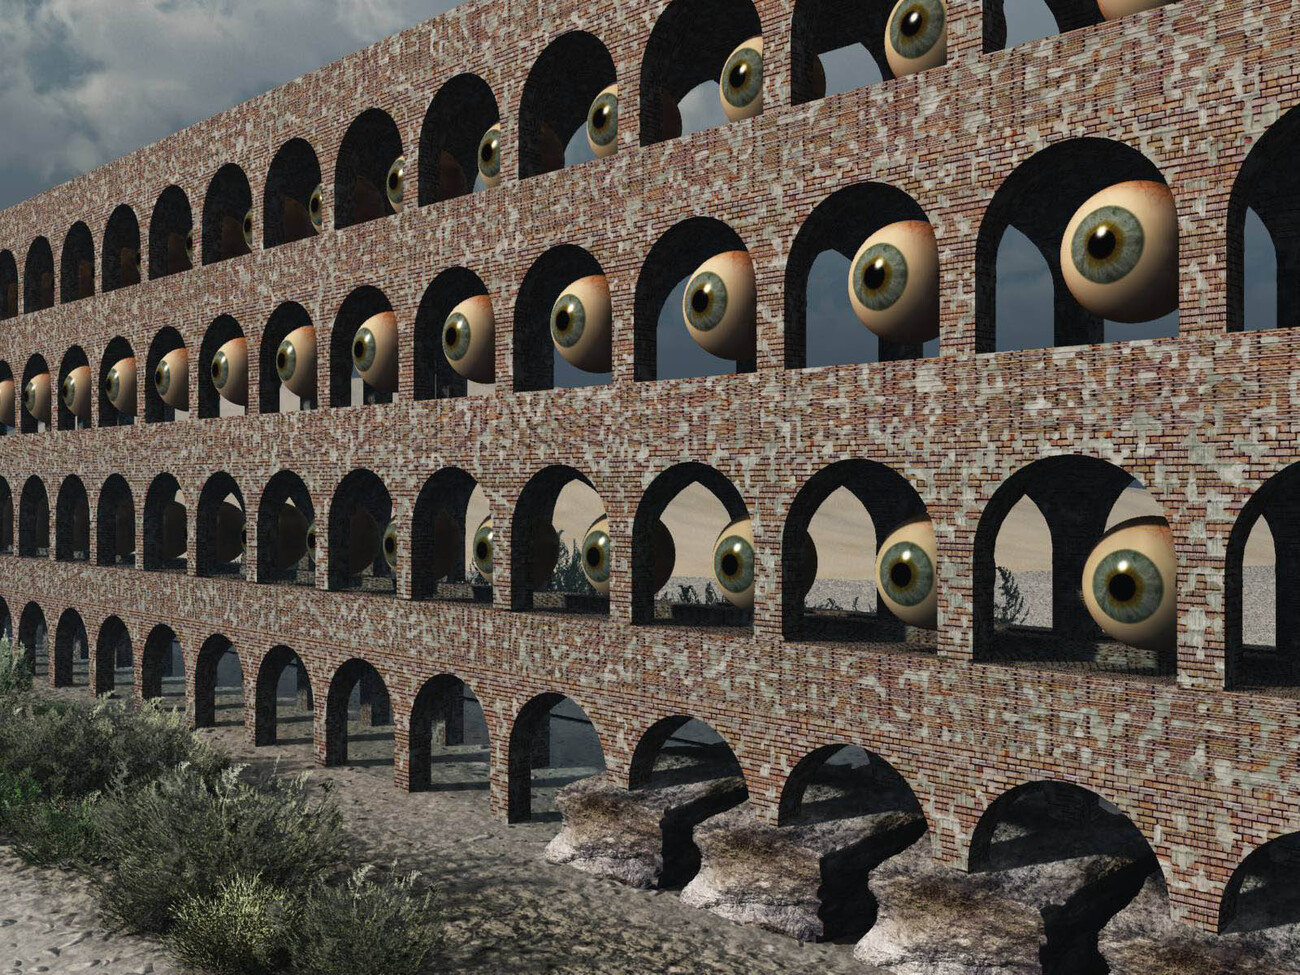 The Aqueduct Has Eyes by rps53